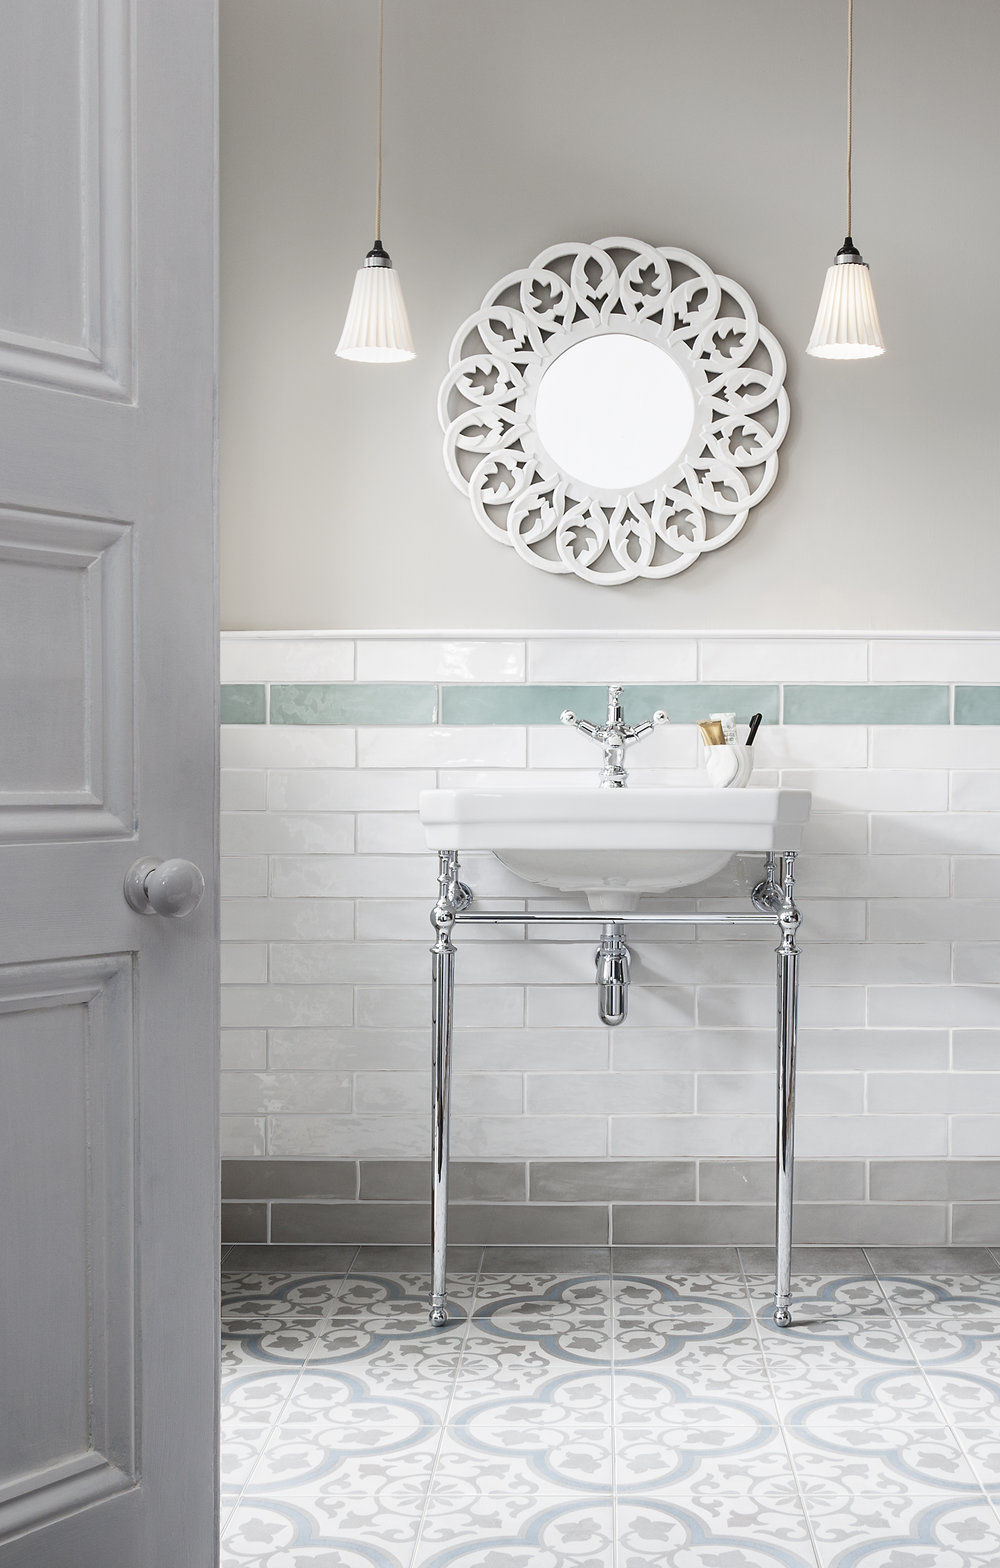 Havana Silver Ornate Matt Tile from Gemini Tiles: £49.99 per m2